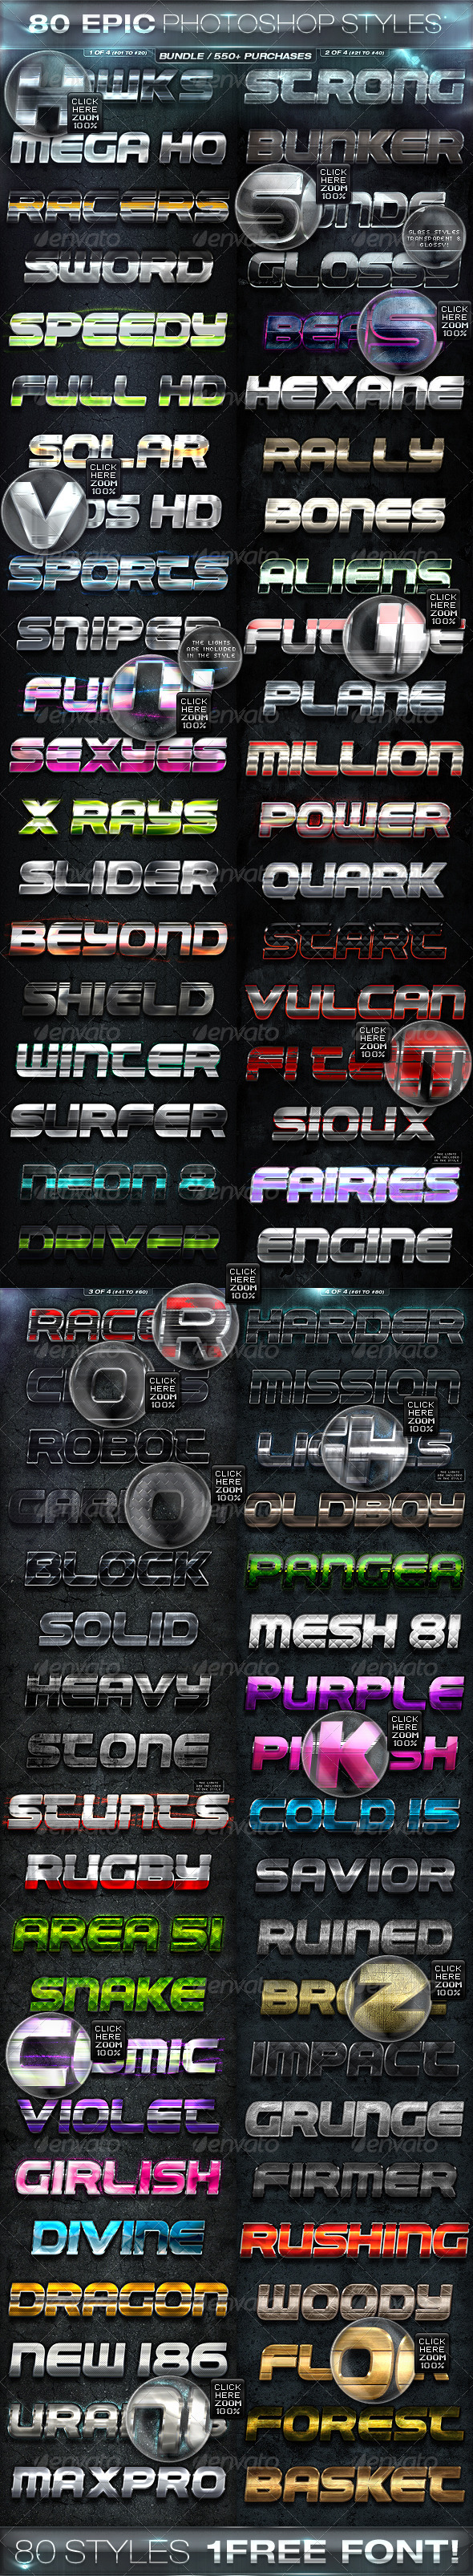 GraphicRiver 80 EPIC PHOTOSHOP STYLES [BUNDLE] 477535